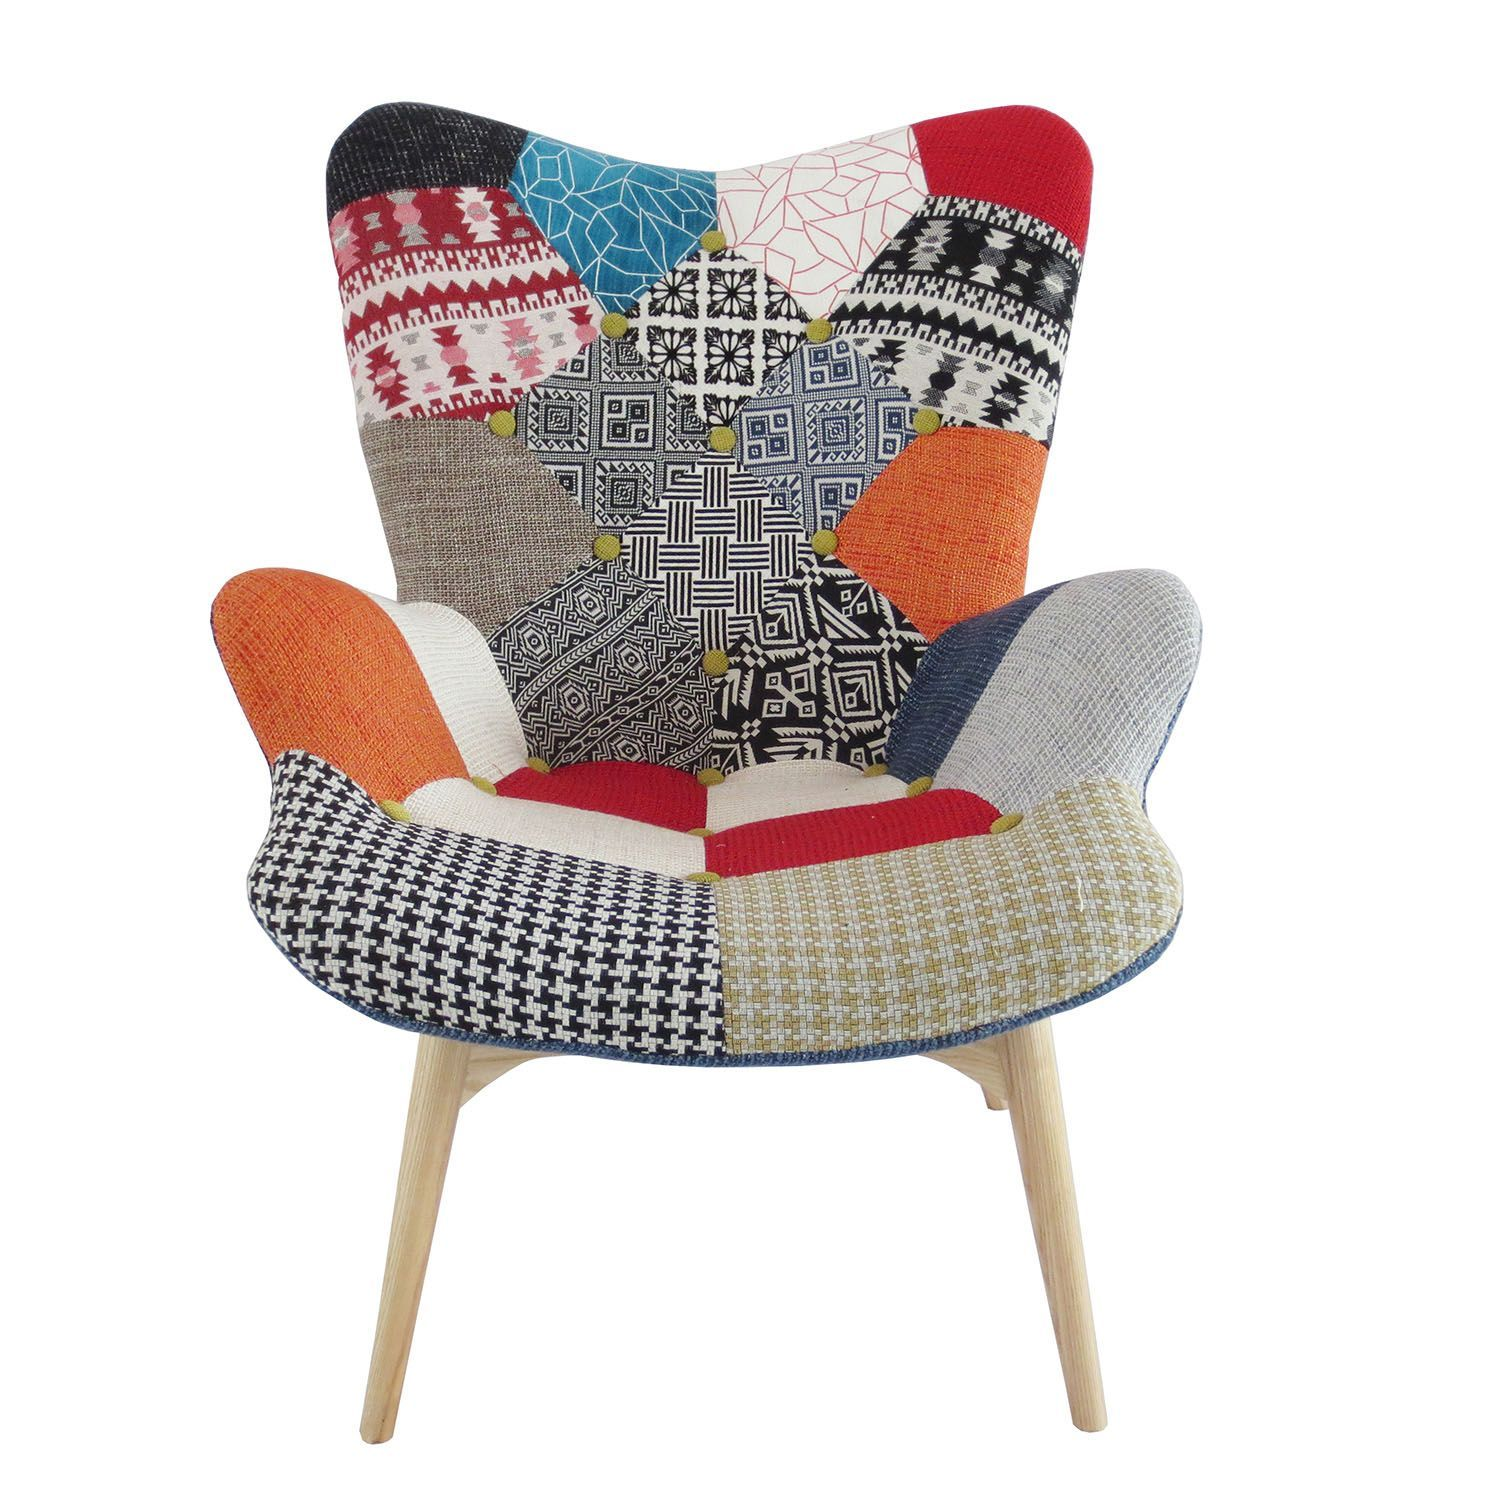 Fauteuil FREATHER Patchwork Chaises Icon Design Chaises De - Fauteuil patchwork design